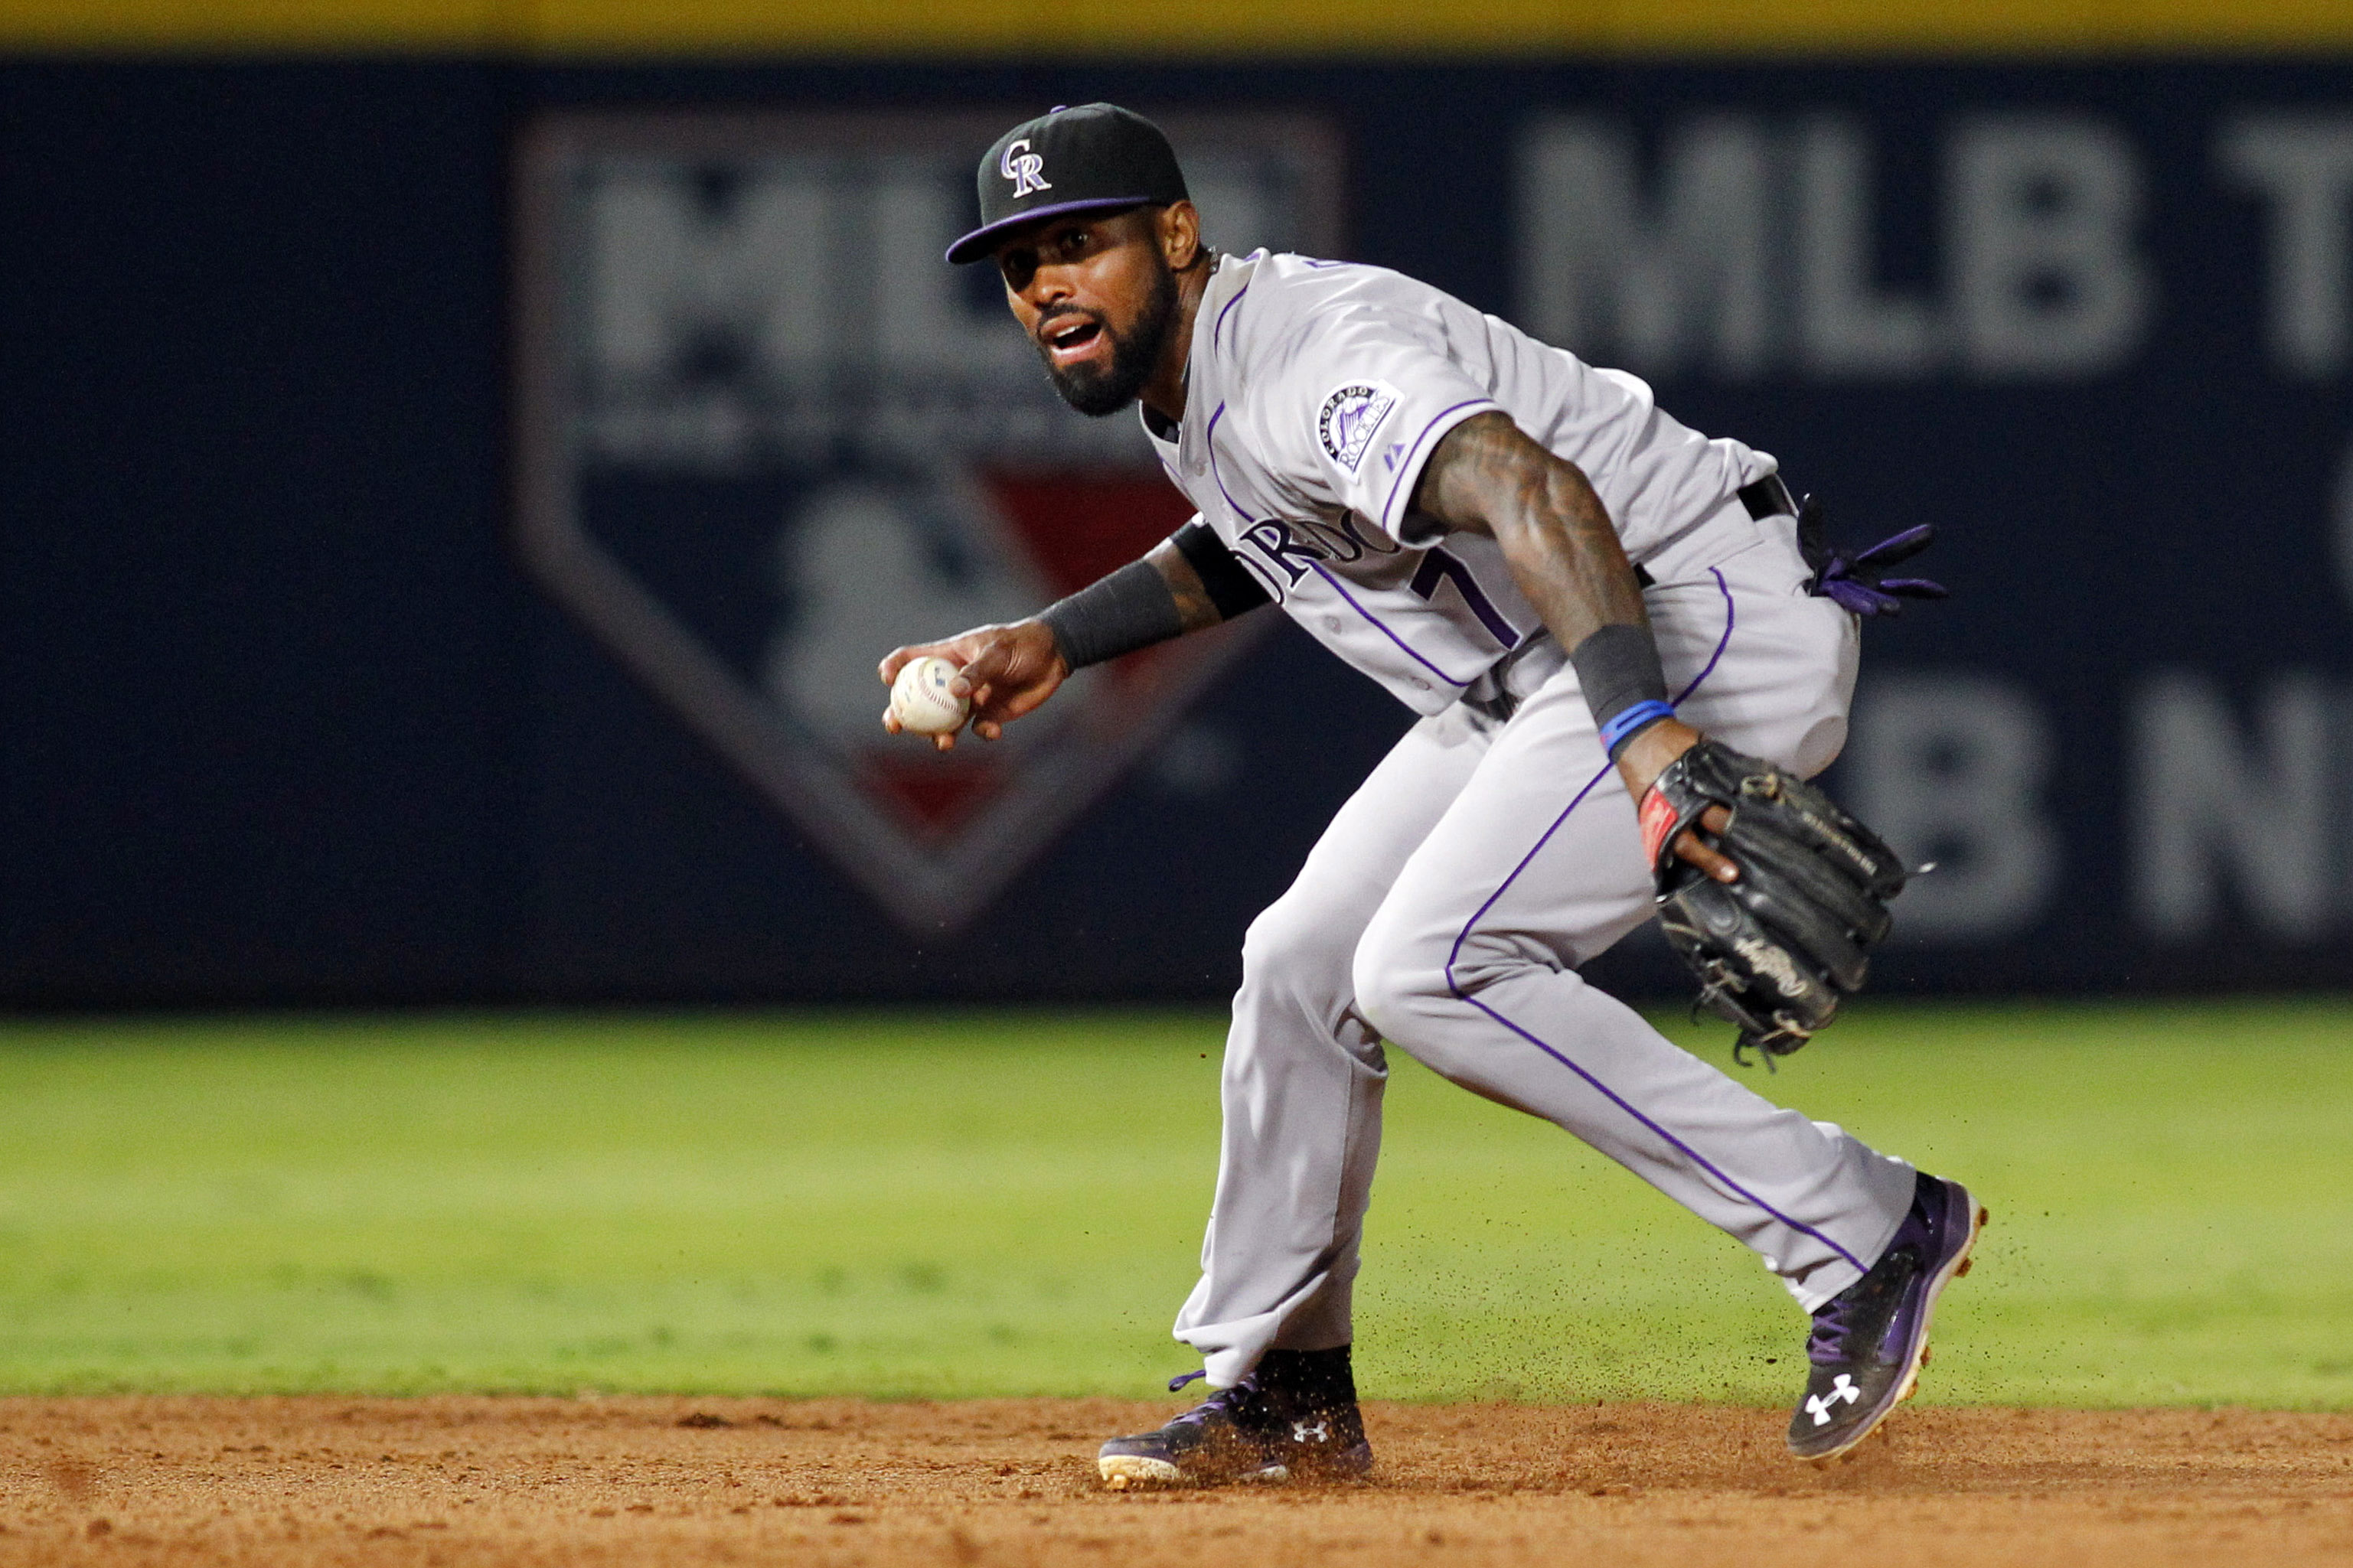 Jose Reyes served a 51-game suspension, and the Rockies have cut him loose. Does he replace Omar Infante at 2B for Kansas City?